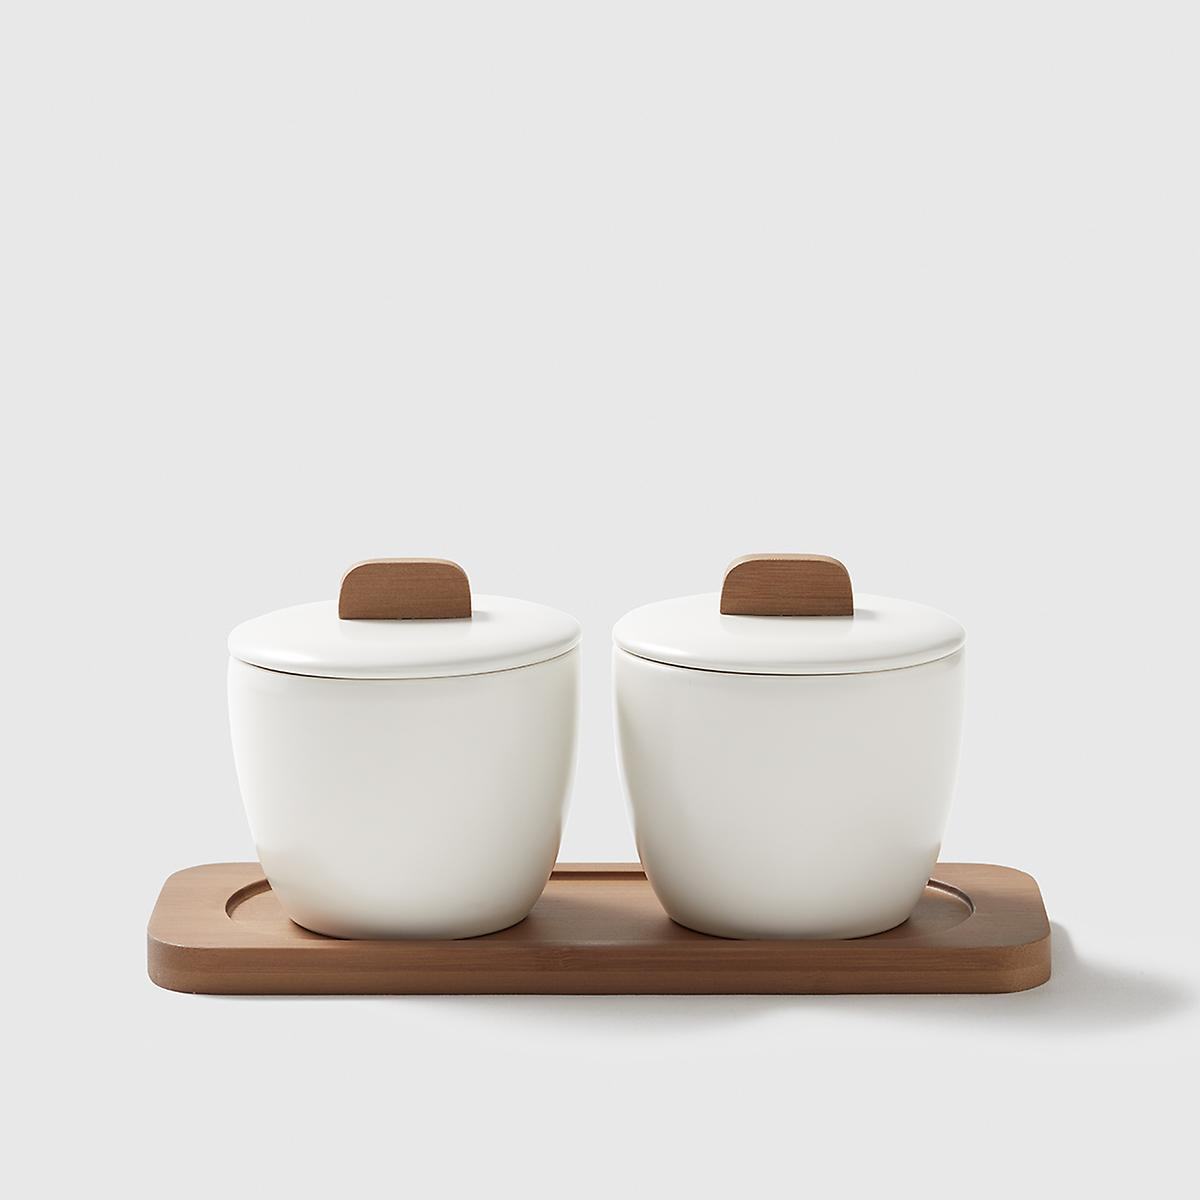 Marie Kondo Cloud White Ceramic Salt Cellars with Bamboo Tray